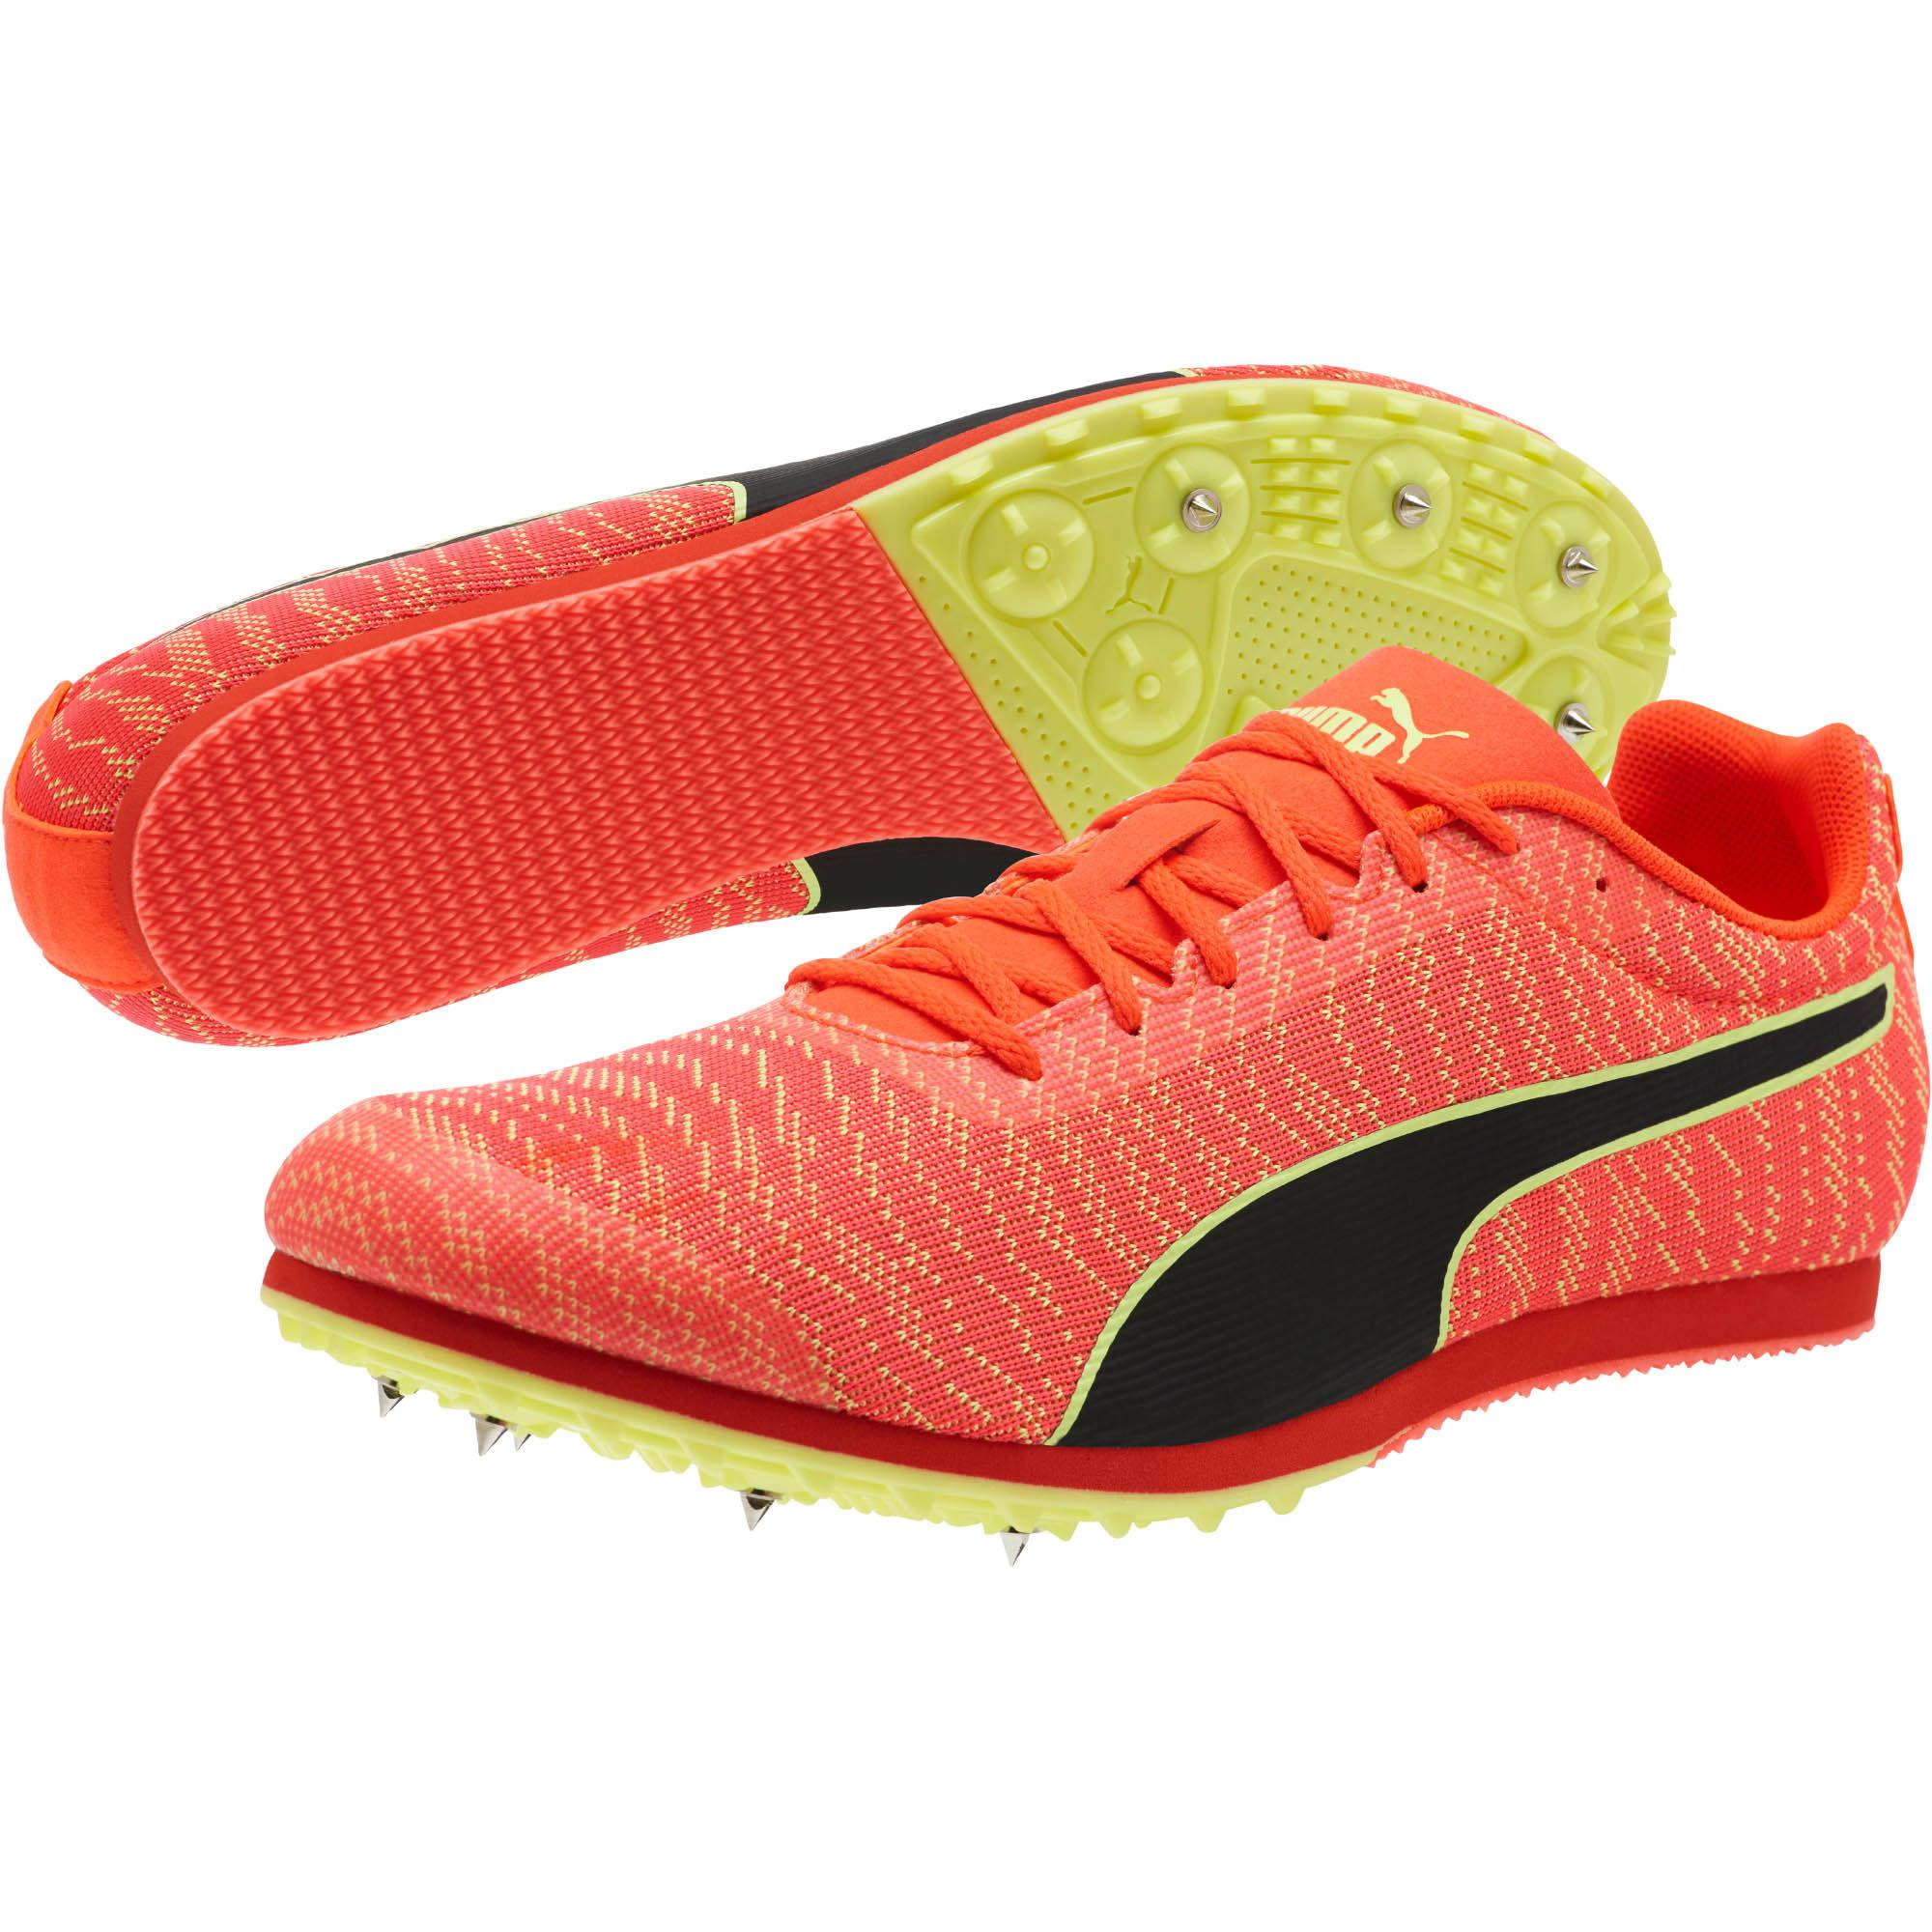 155ea213a7f Lyst - PUMA Evospeed Star 6 Men s Track Spikes in Red for Men